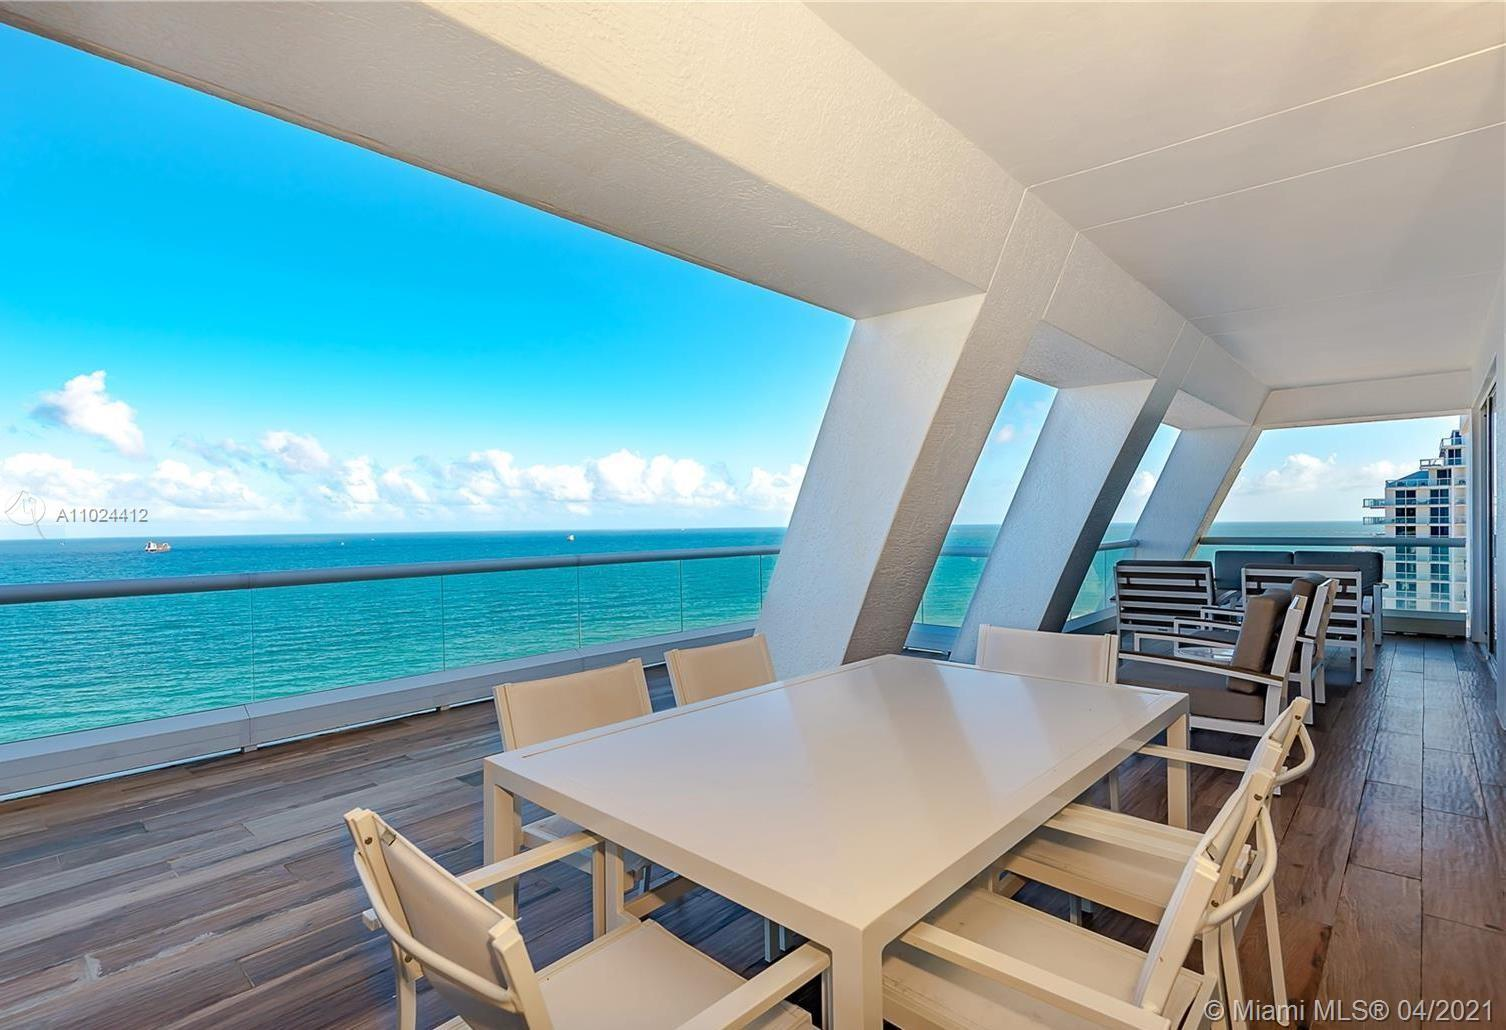 Amazing SE corner 2/2 with an oceanfront terrace! Completely furnished and finished, this unit at Th